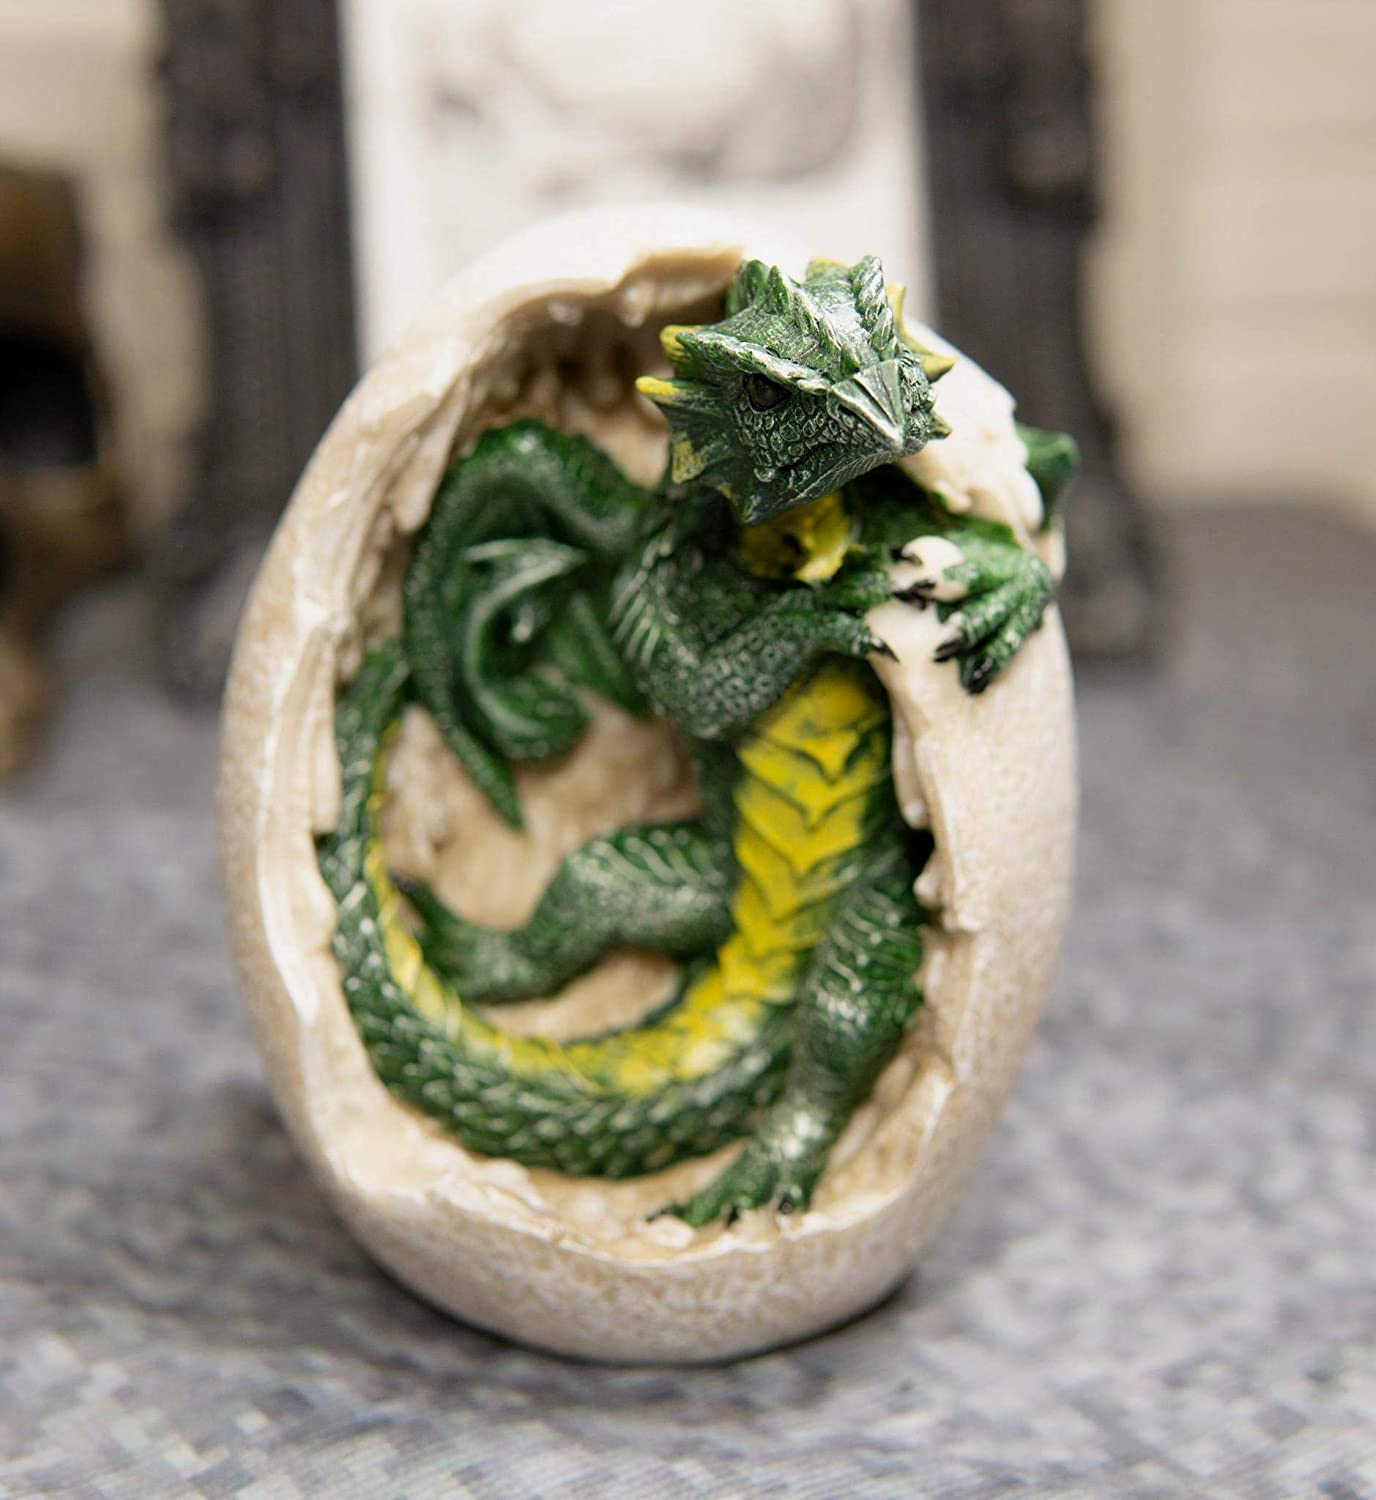 Ebros Gift Fossil Elemental Dragon Wyrmling Hatchling Breaking Out of Egg Shell Decorative Figurine 5 H Dungeons and Dragons Collectible Eggs Decor Medieval Renaissance Theme (Green Spectrum)